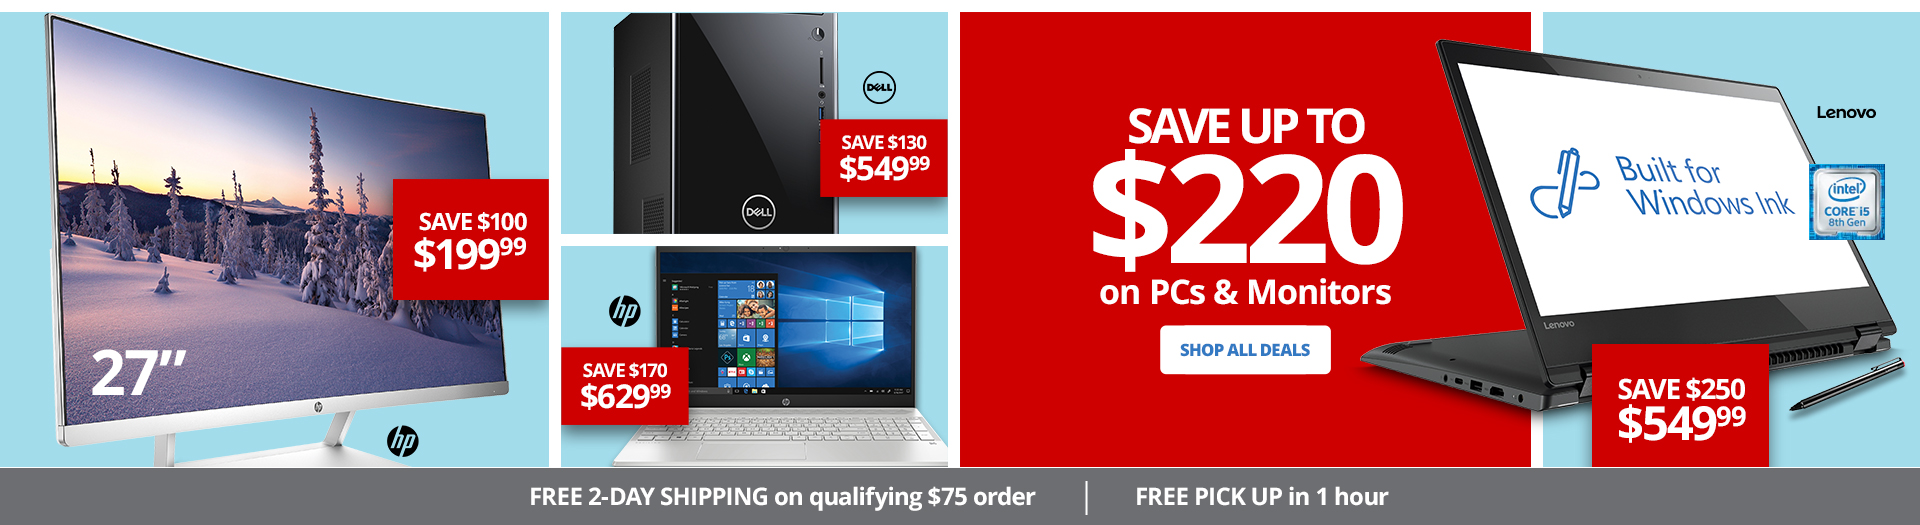 Save up to $220 on PCs and Monitors - Save $250 on Lenovo Purchase